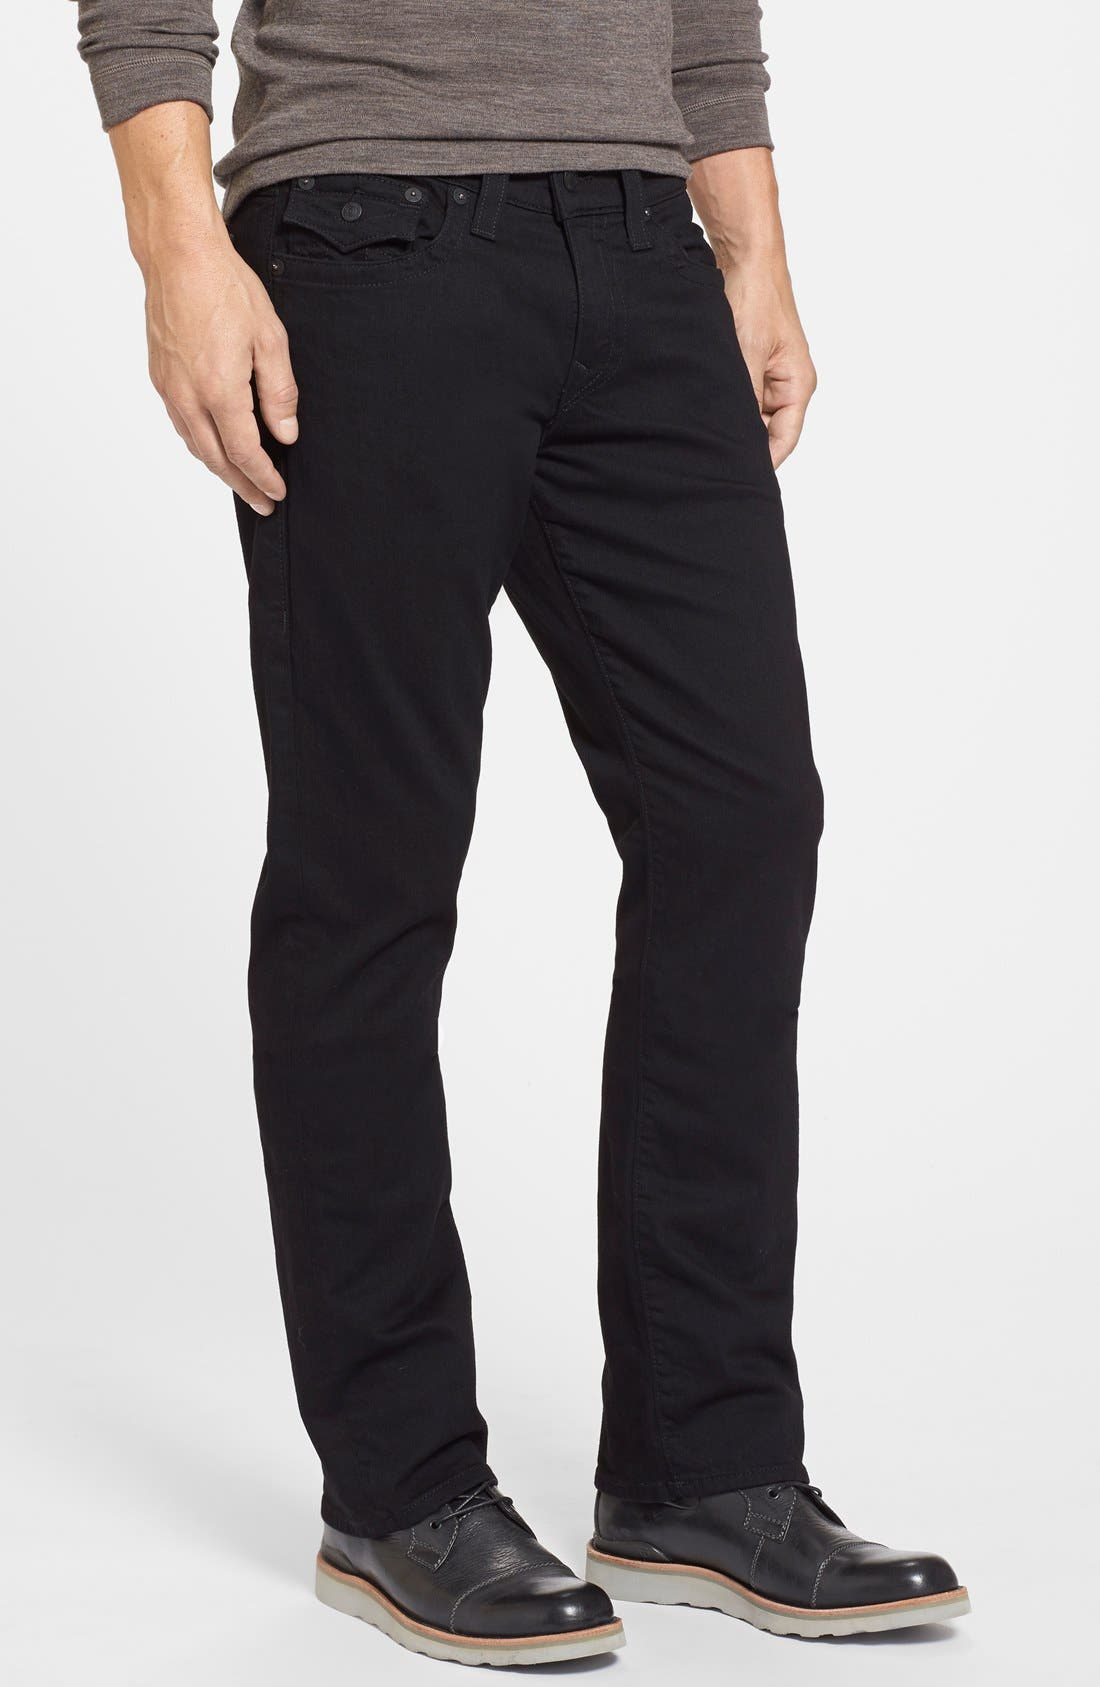 Ricky Relaxed Fit Jeans,                             Alternate thumbnail 2, color,                             002